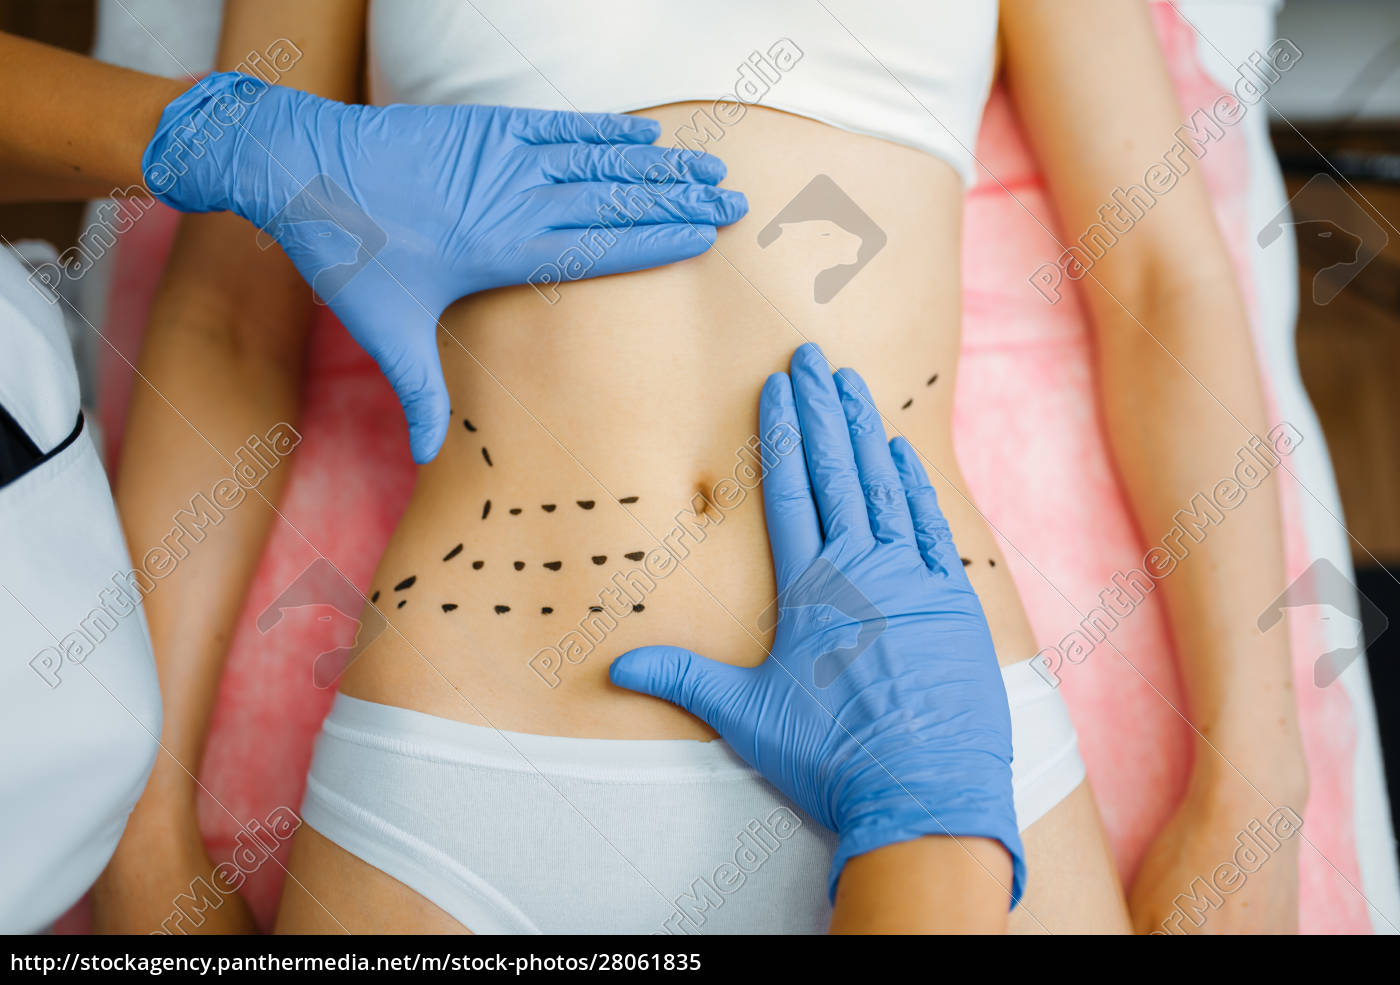 cosmetician's, hands, on, female, patient, abdomen - 28061835